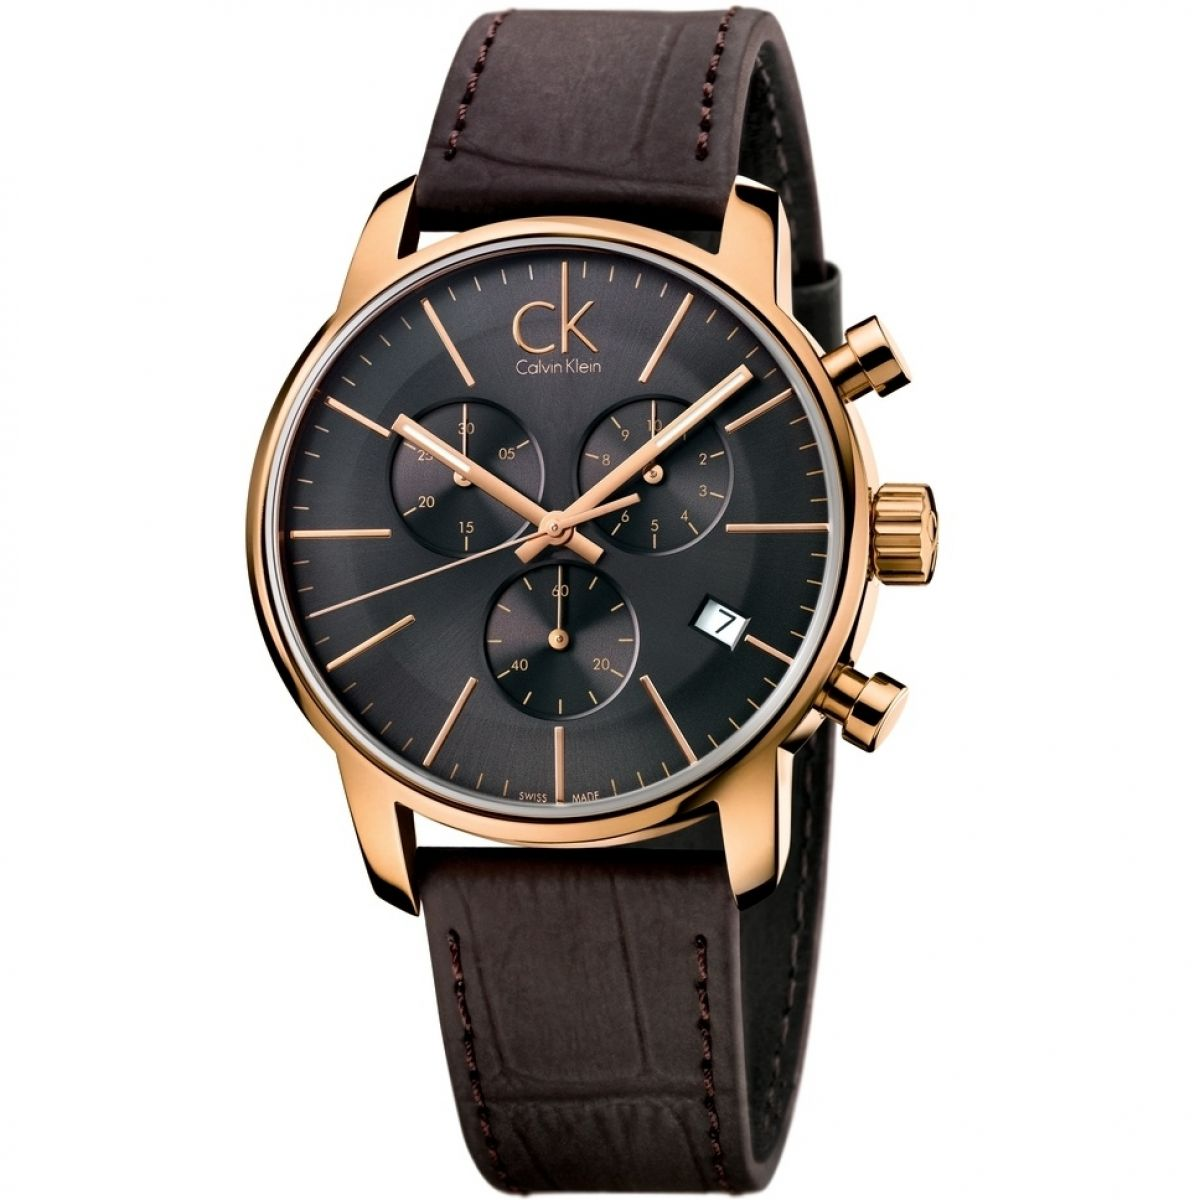 CALVIN KLEIN man Watch CRONO FORMALITY black CHRONOGRAPH 43mm K2G276G3